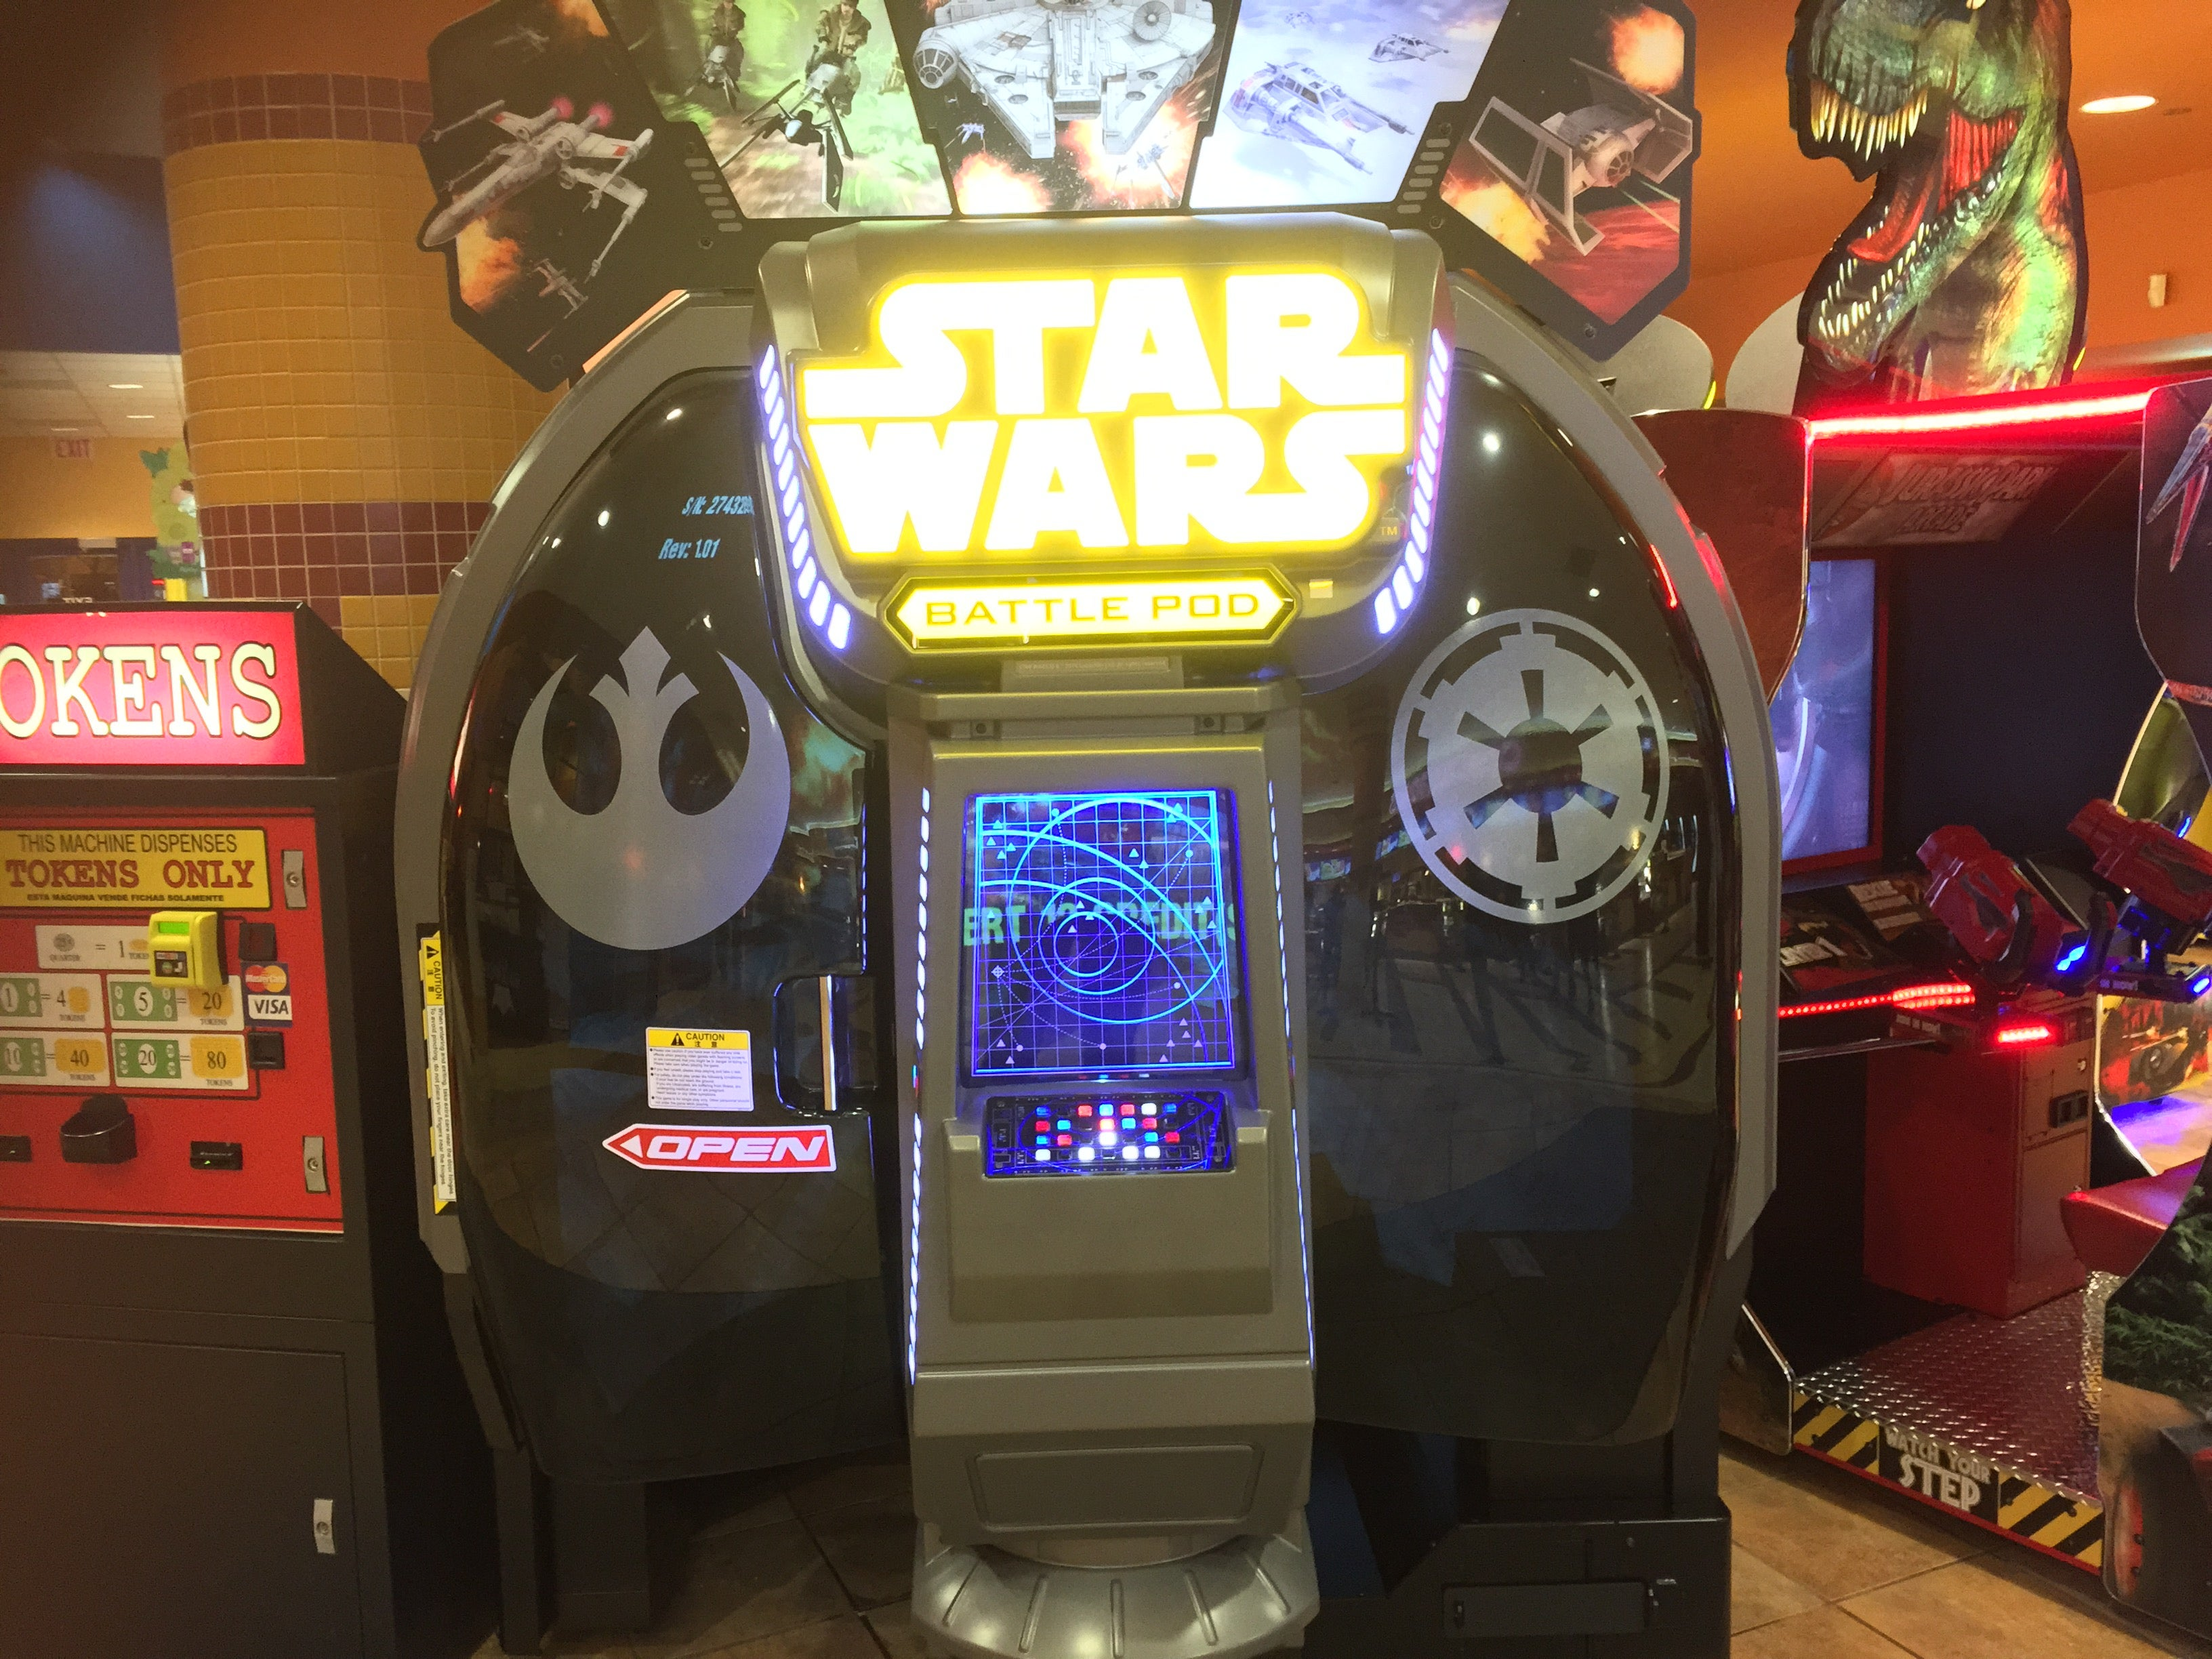 The New Star Wars Arcade Game Is Worth Tracking Down